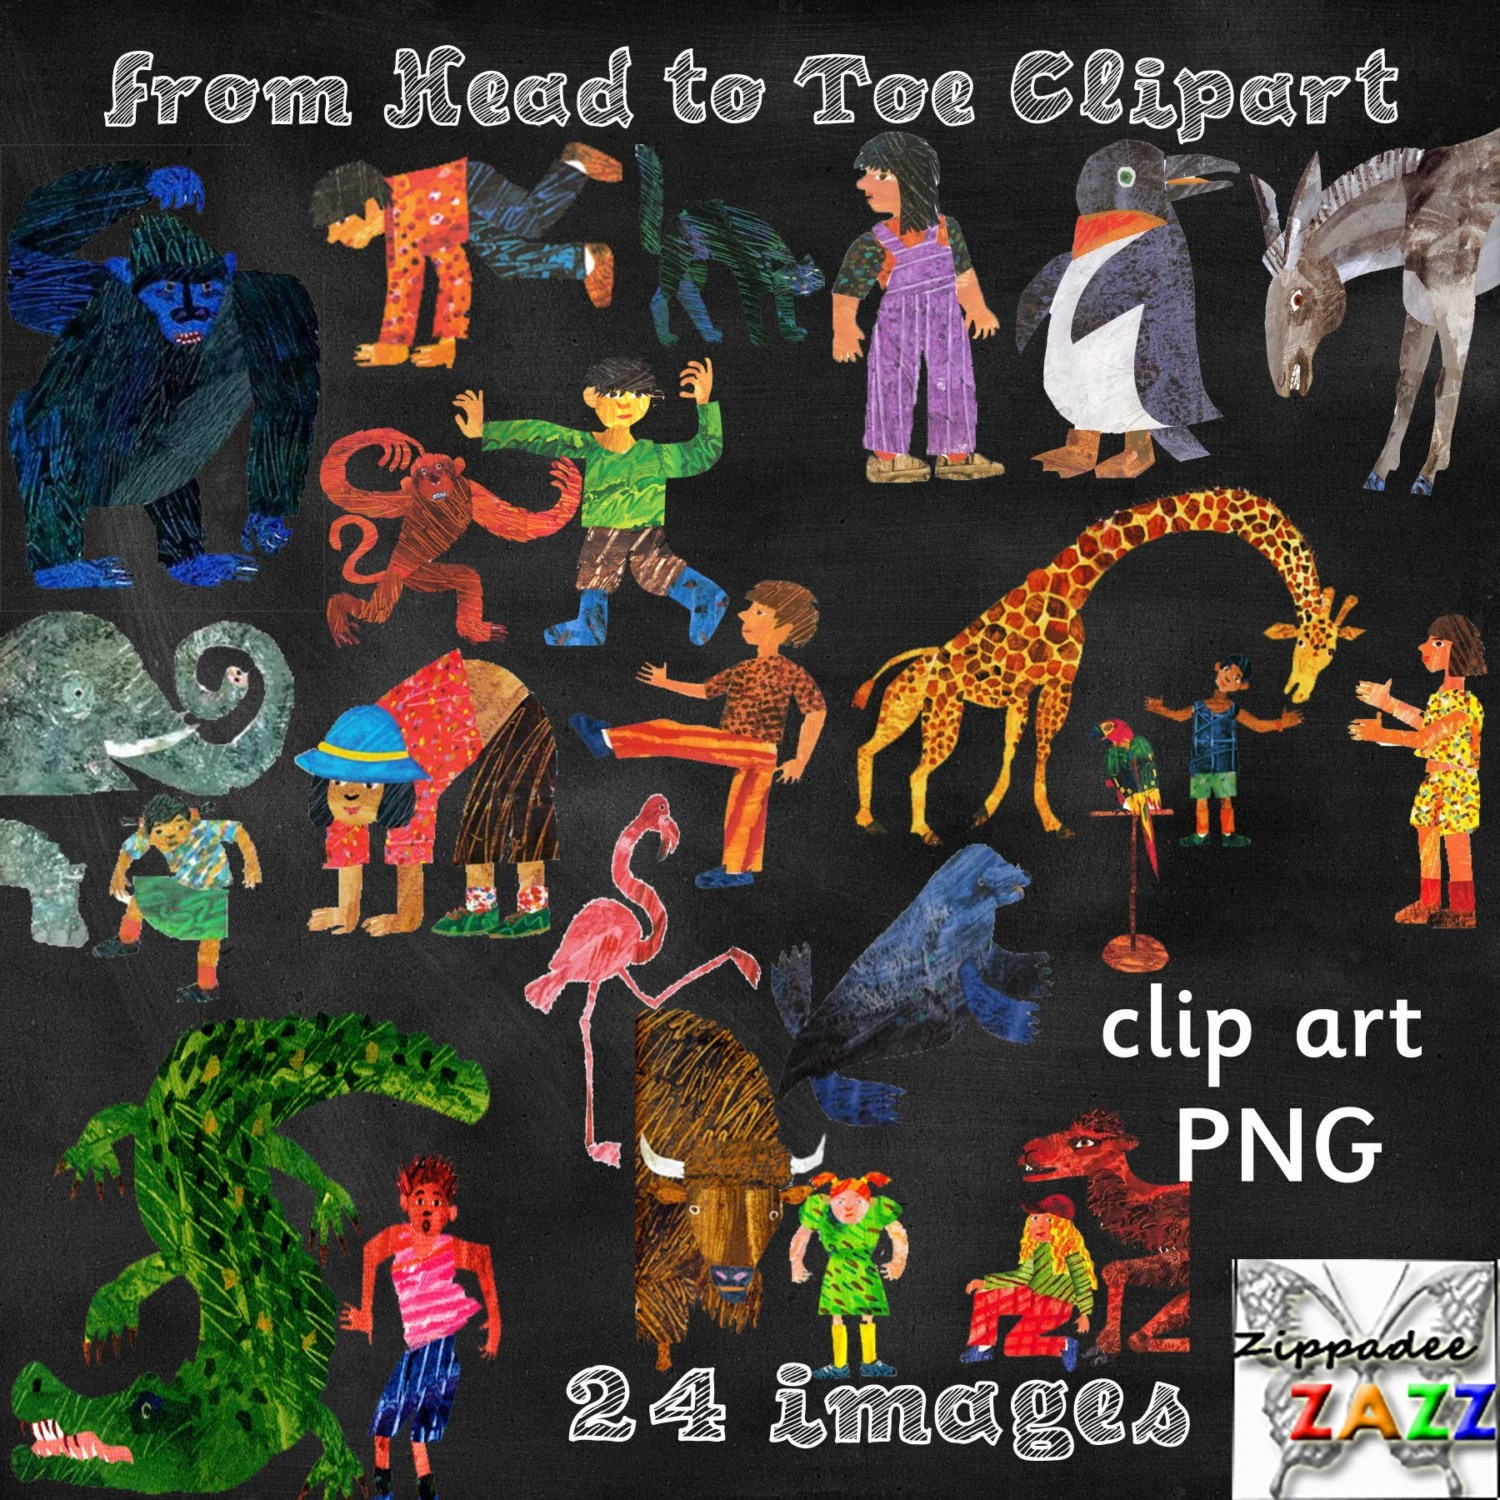 From Head To Toe Clipart Eric Carle By Zippadeezazzdesigns